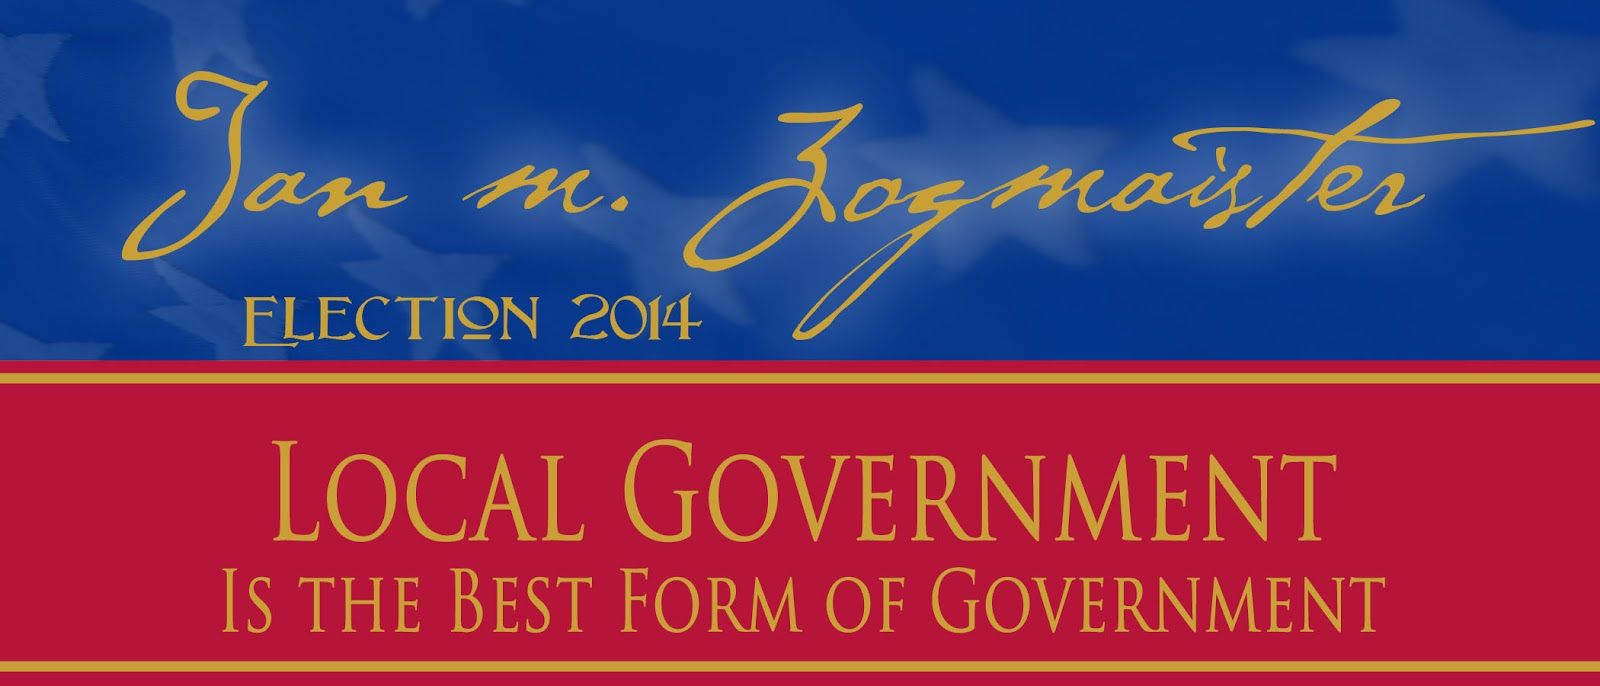 Local Government Best Form of Government - Jan Zogmaister